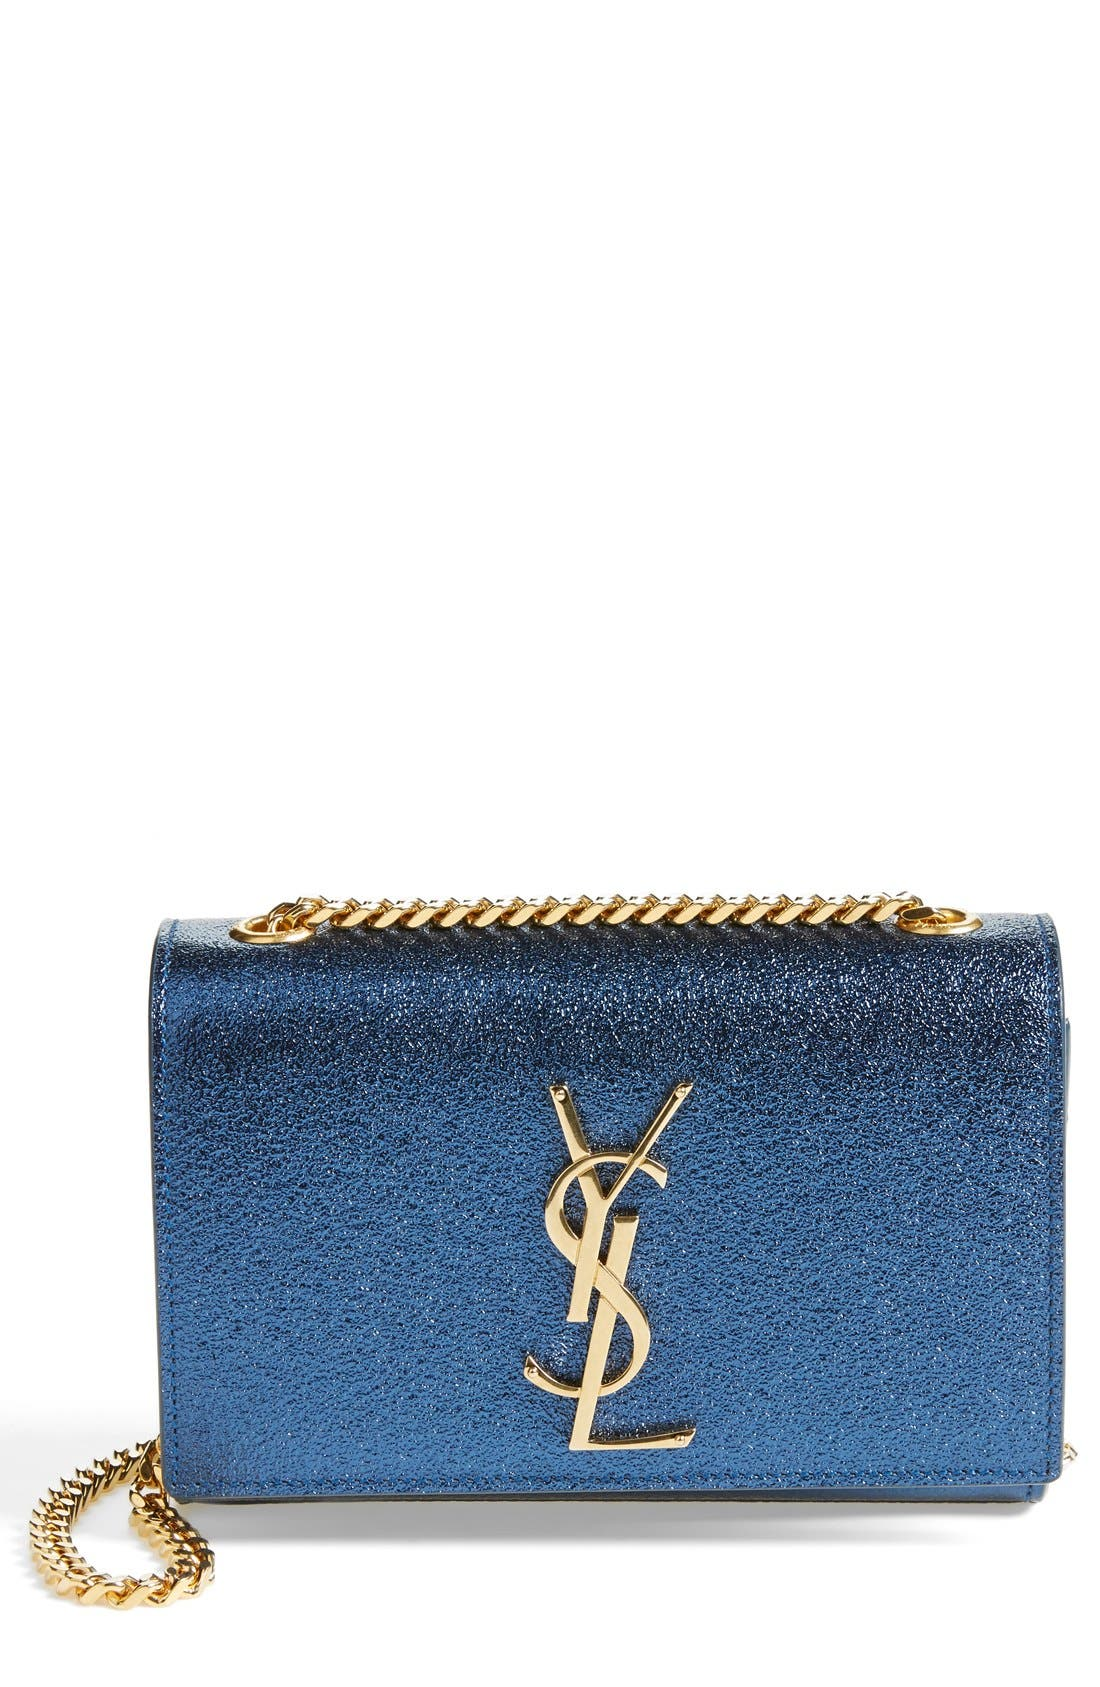 'Small Monogram' Crossbody Bag,                             Main thumbnail 1, color,                             Bleu Metallise